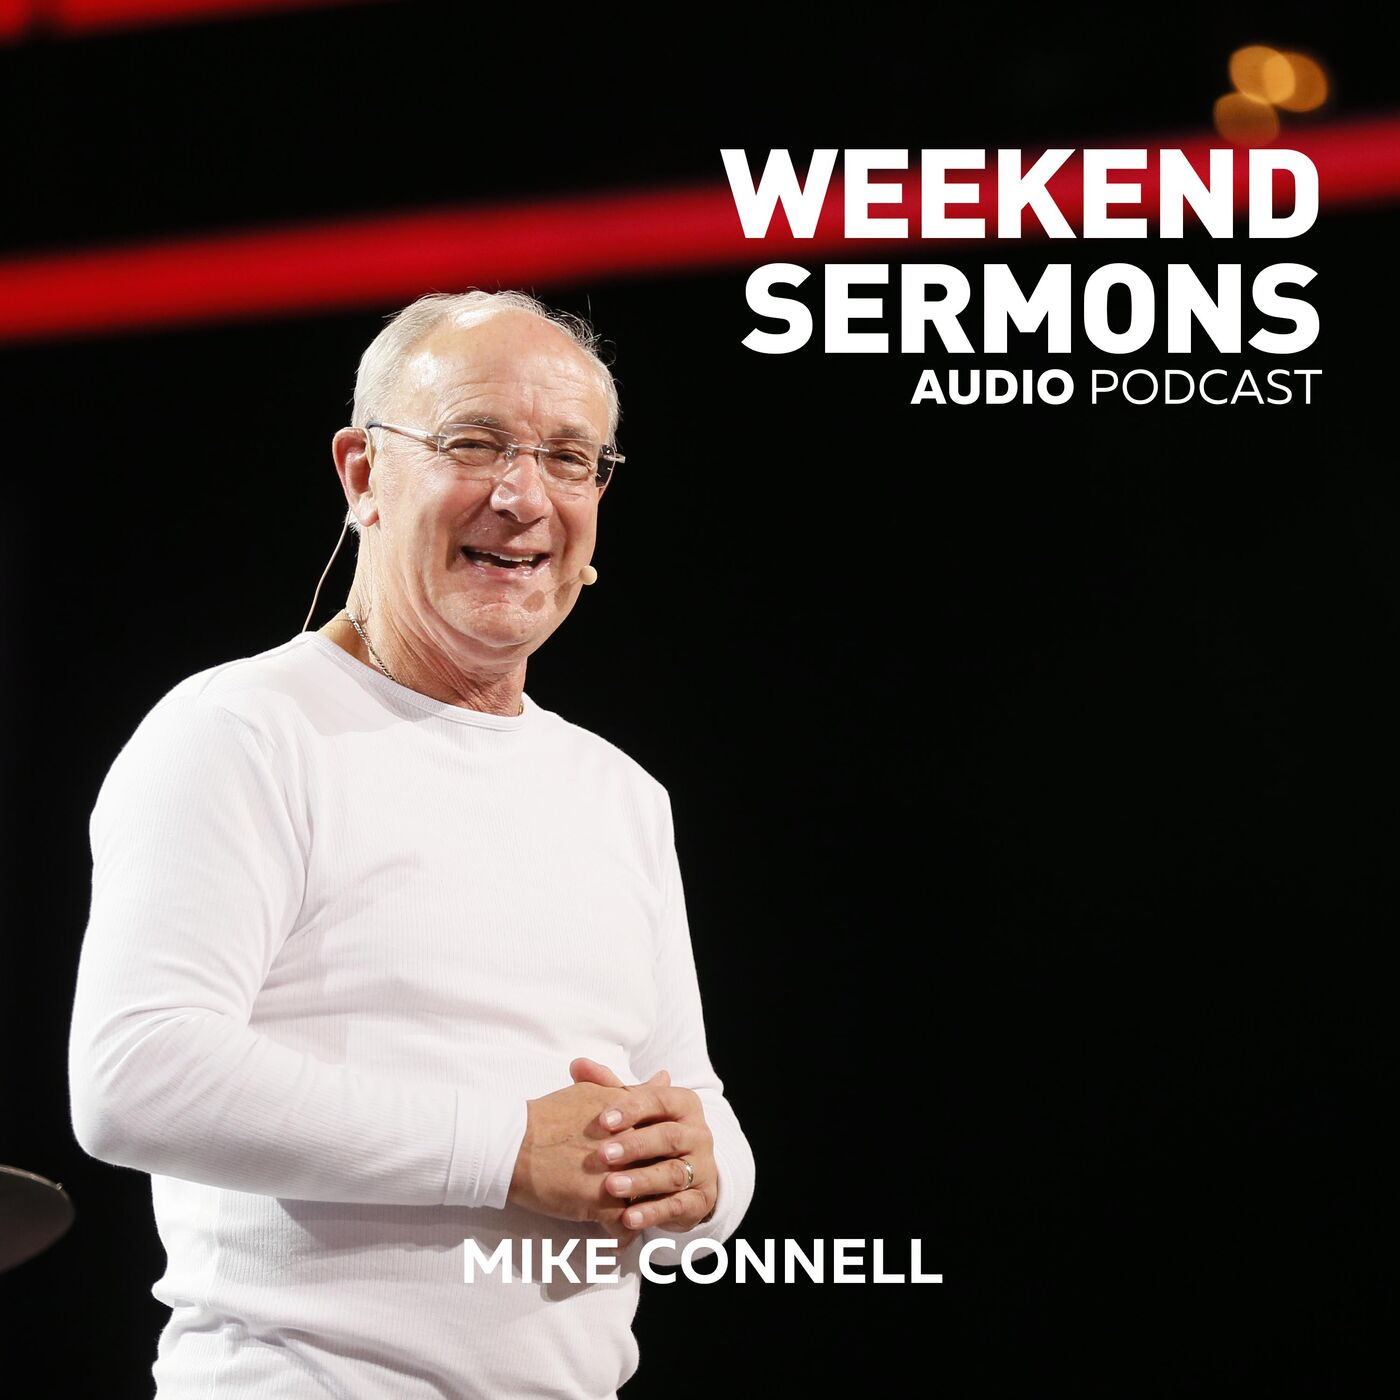 Mike Connell: Revelation of the Father's Love